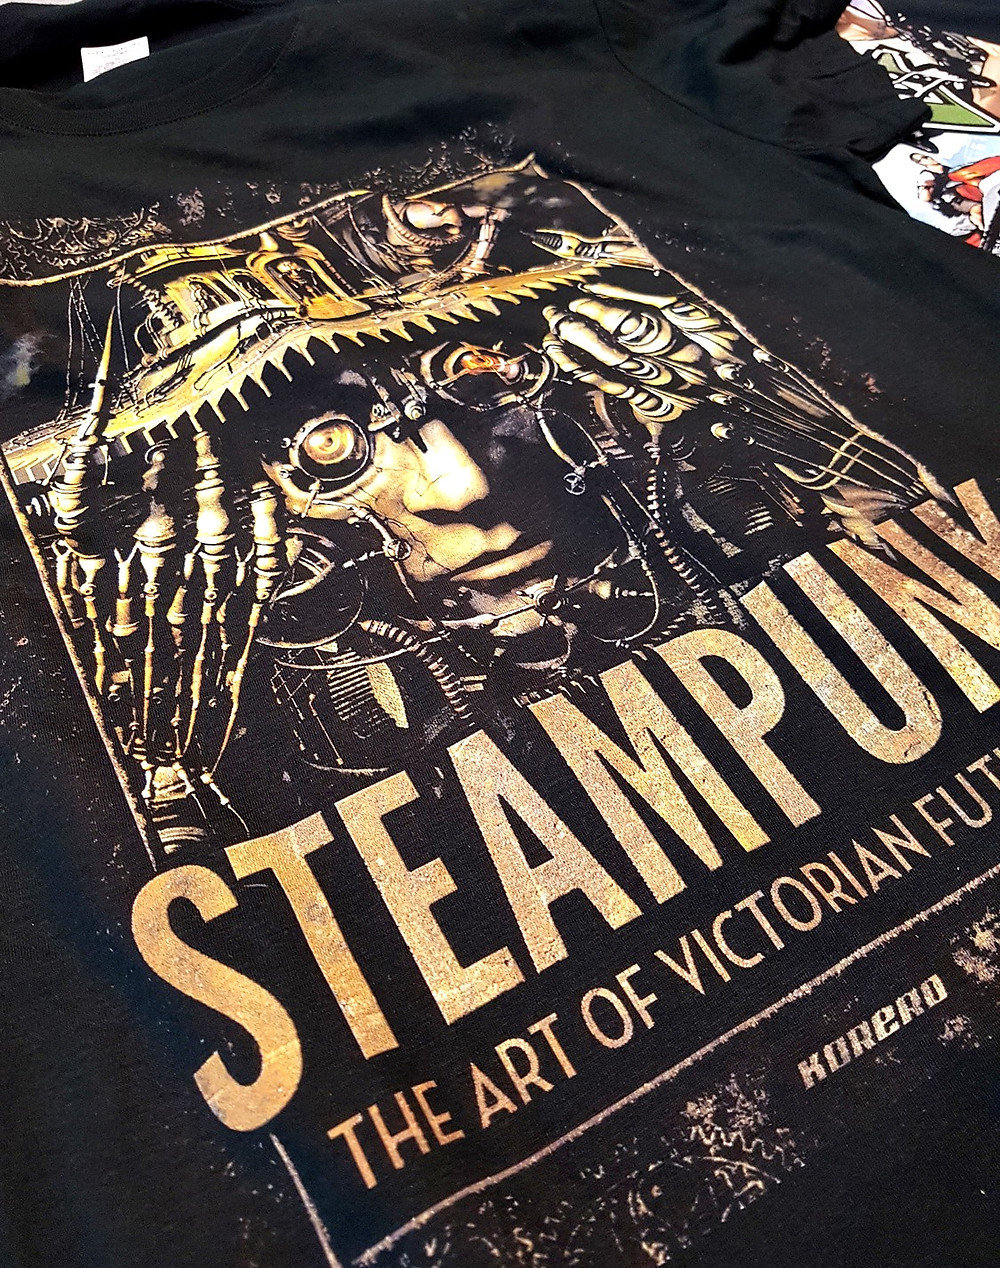 Stampa DTG su t-shirt scura